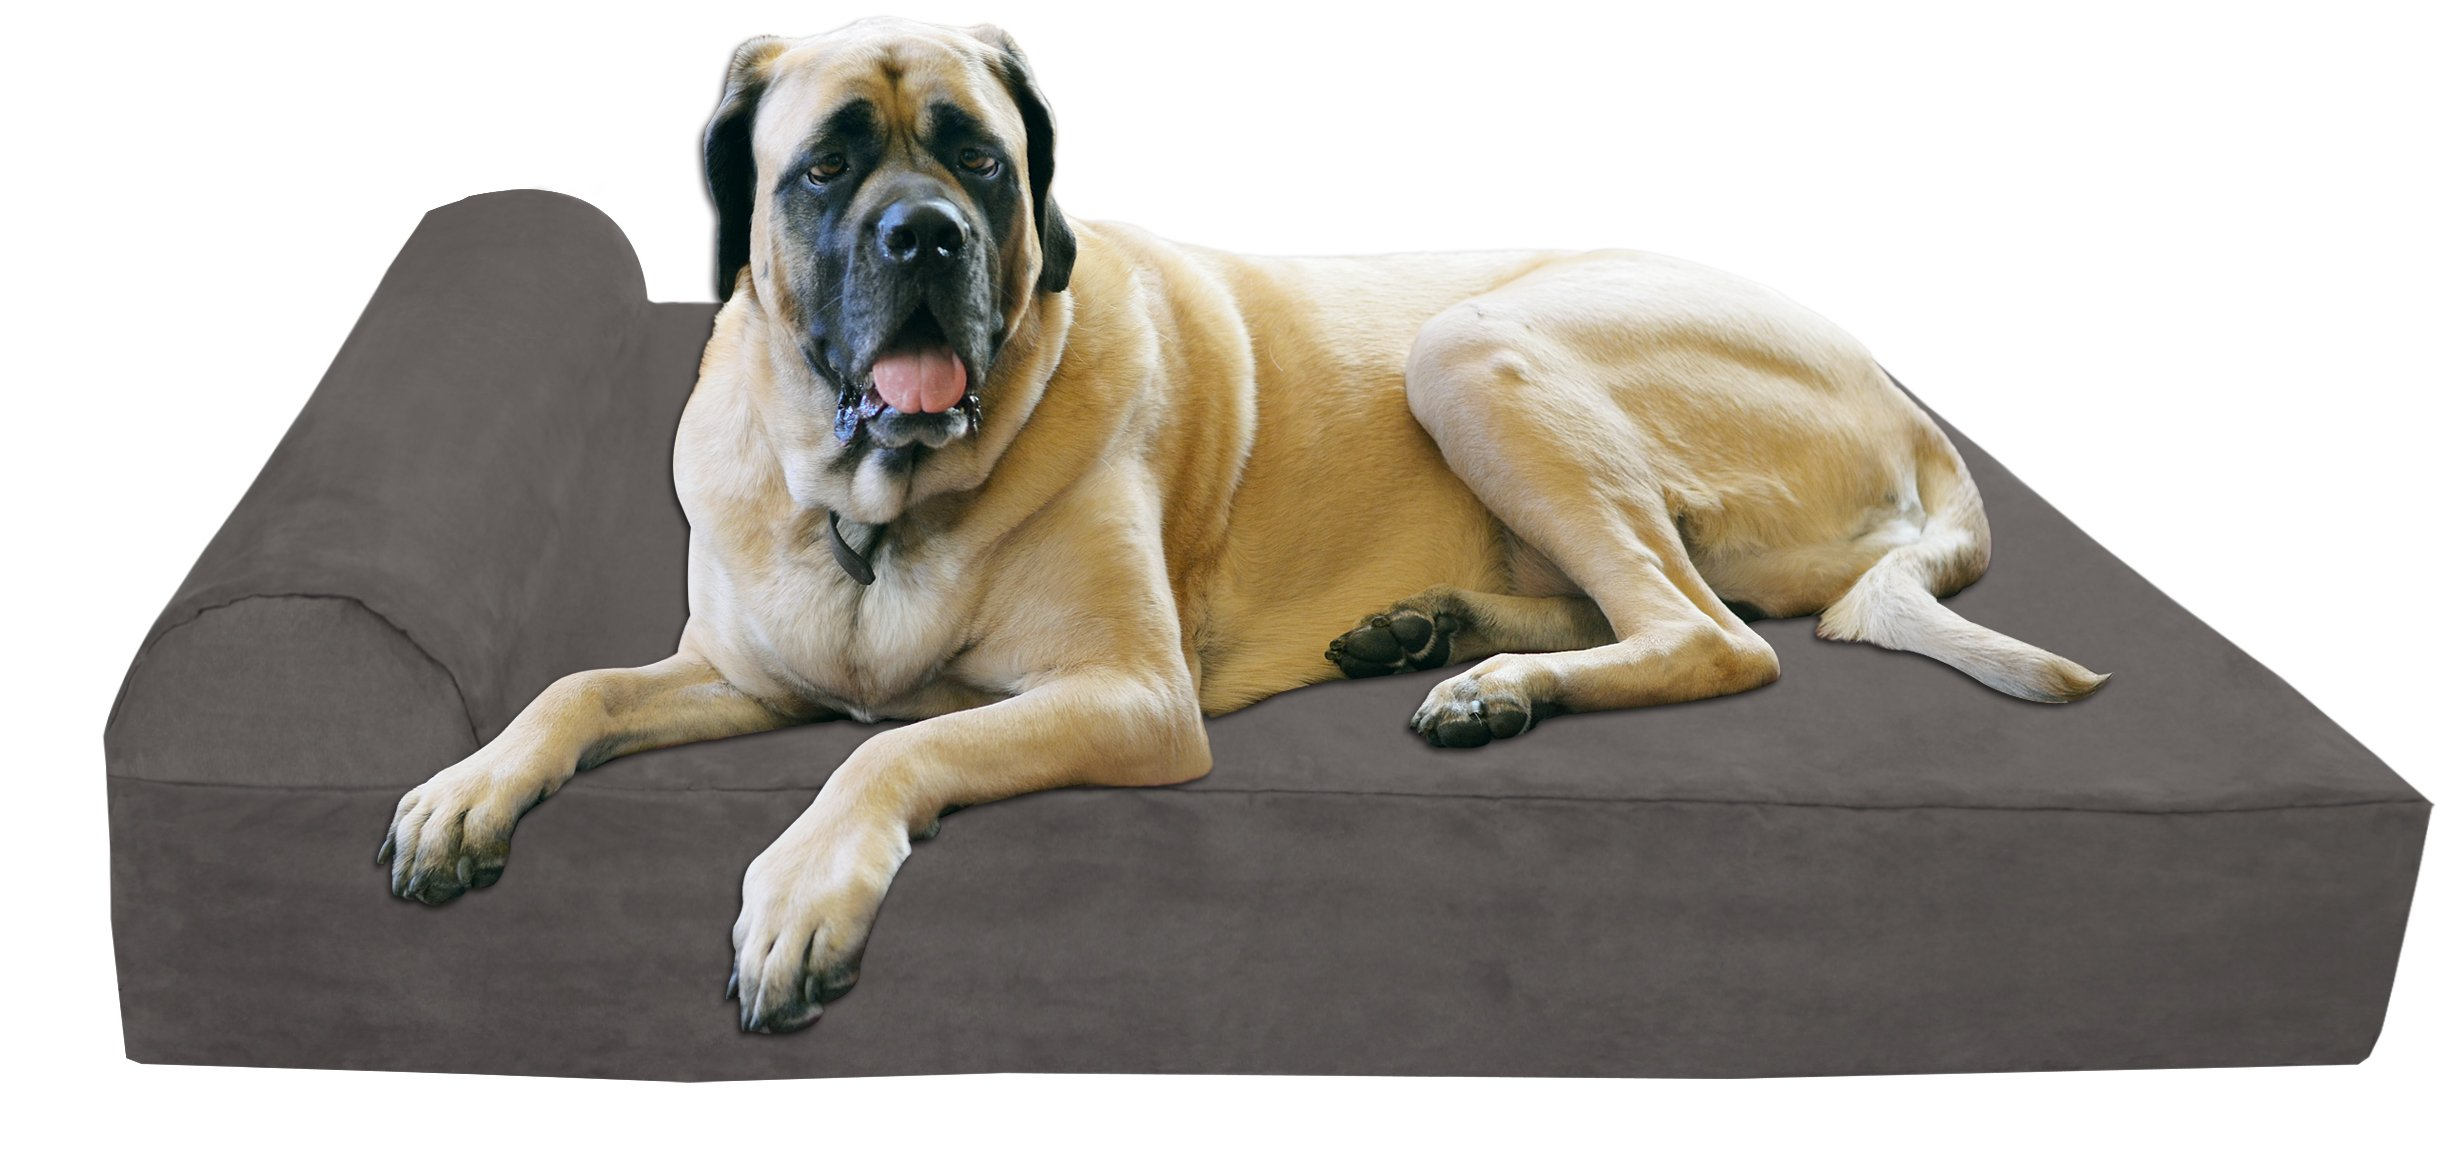 Big Barker 7'' Orthopedic Dog Bed with Pillow-Top (Headrest Edition) | Dog Beds Made for Large, Extra Large & XXL Size Dog Breeds | Removable Durable Microfiber Cover | Made in USA